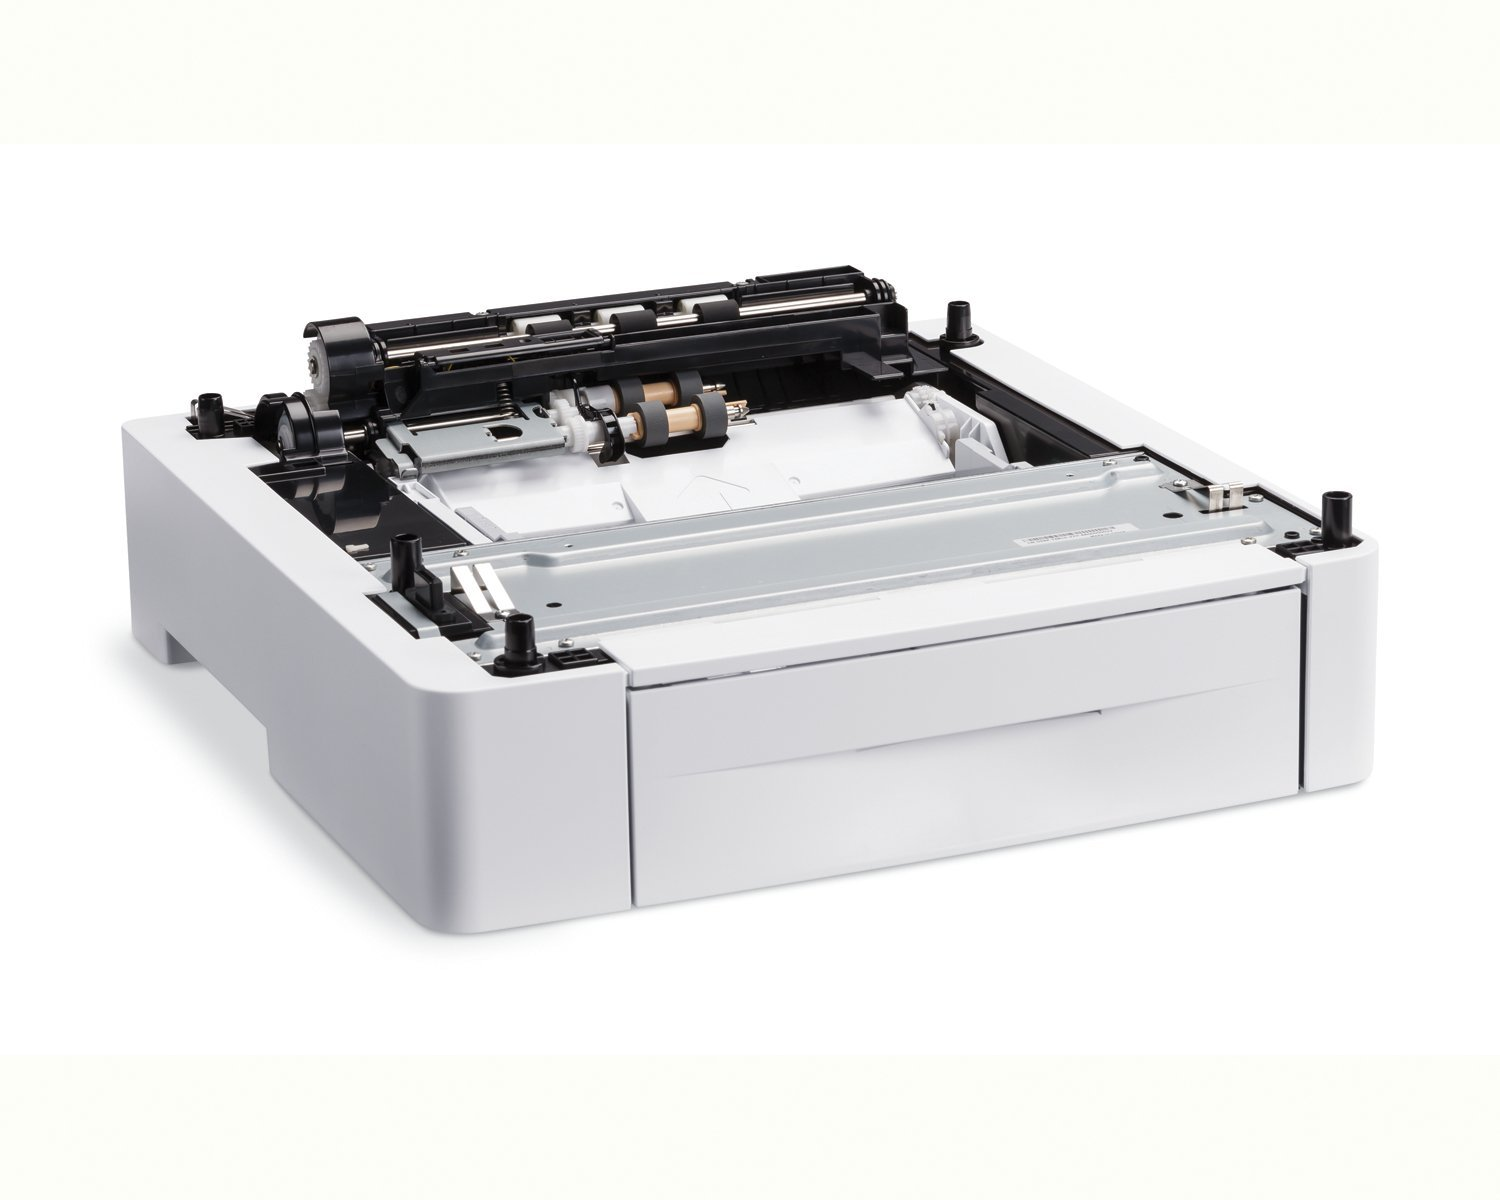 Xerox Media tray / feeder - 550 sheets in 1 tray 497K13620